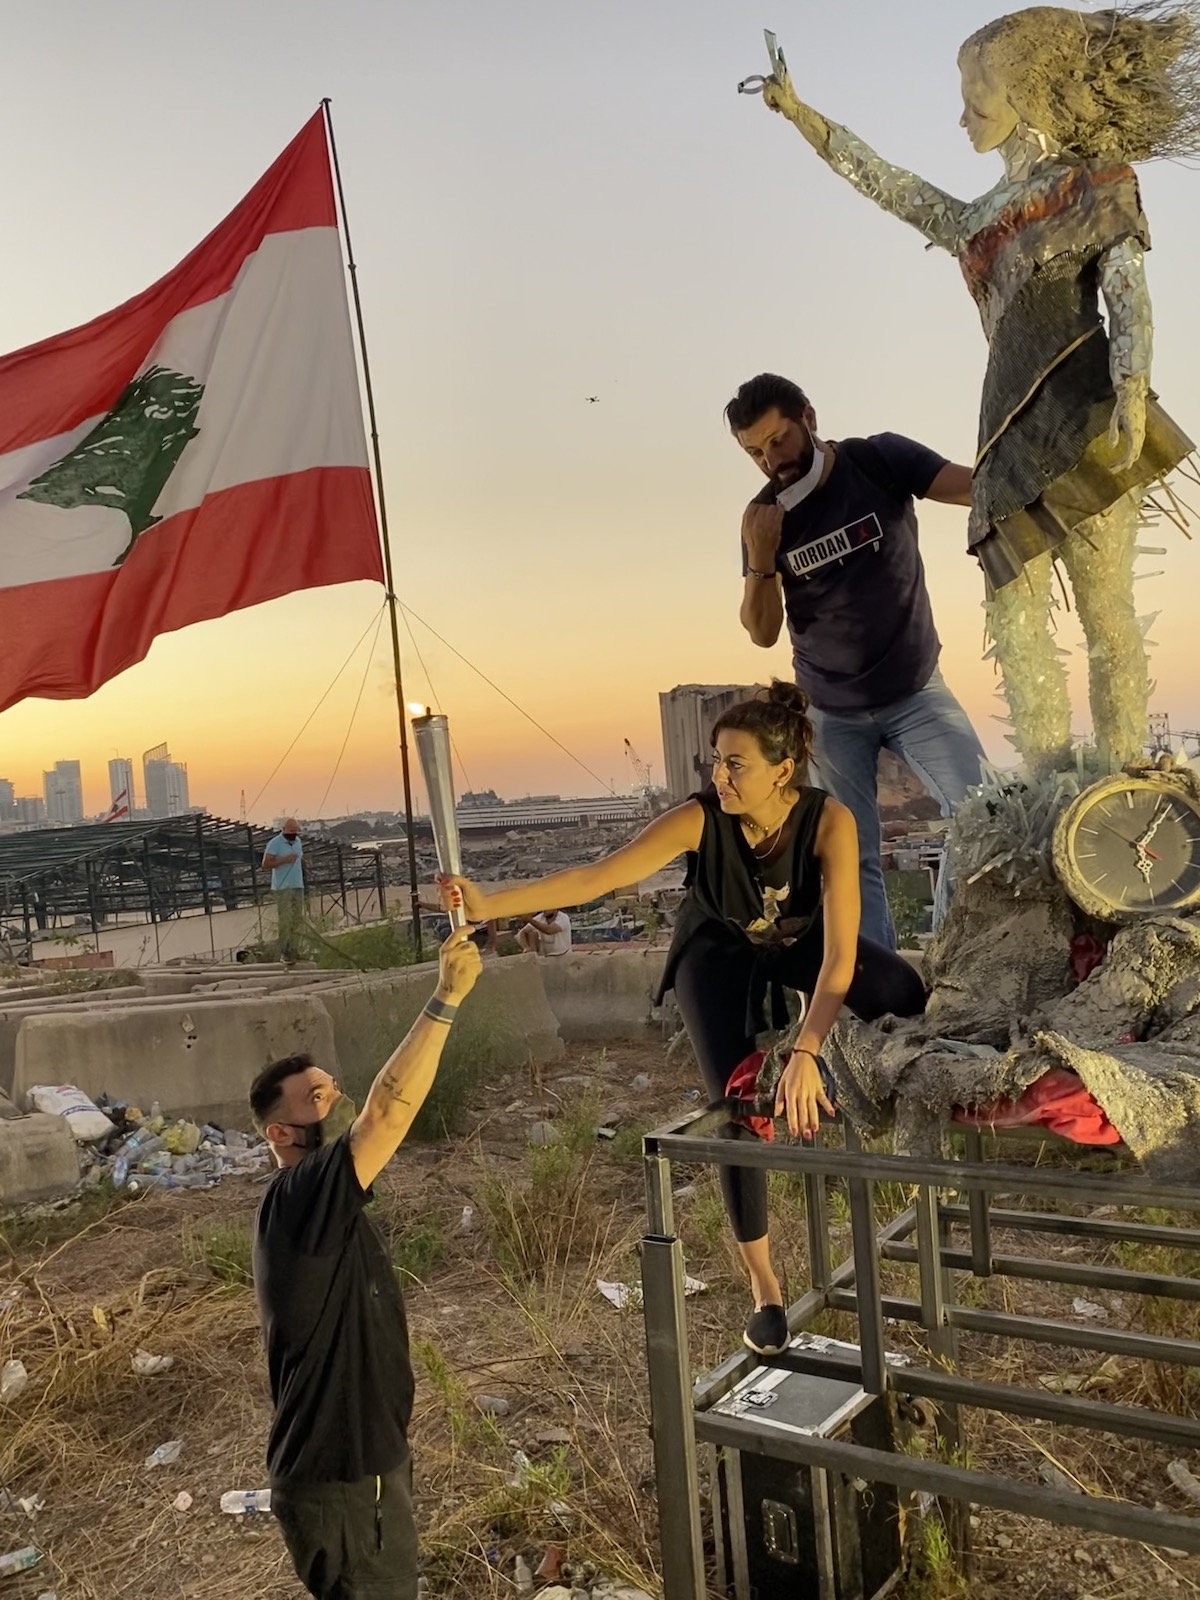 Placing Lebanese Flag in the Hands of Revolutionary Sculpture